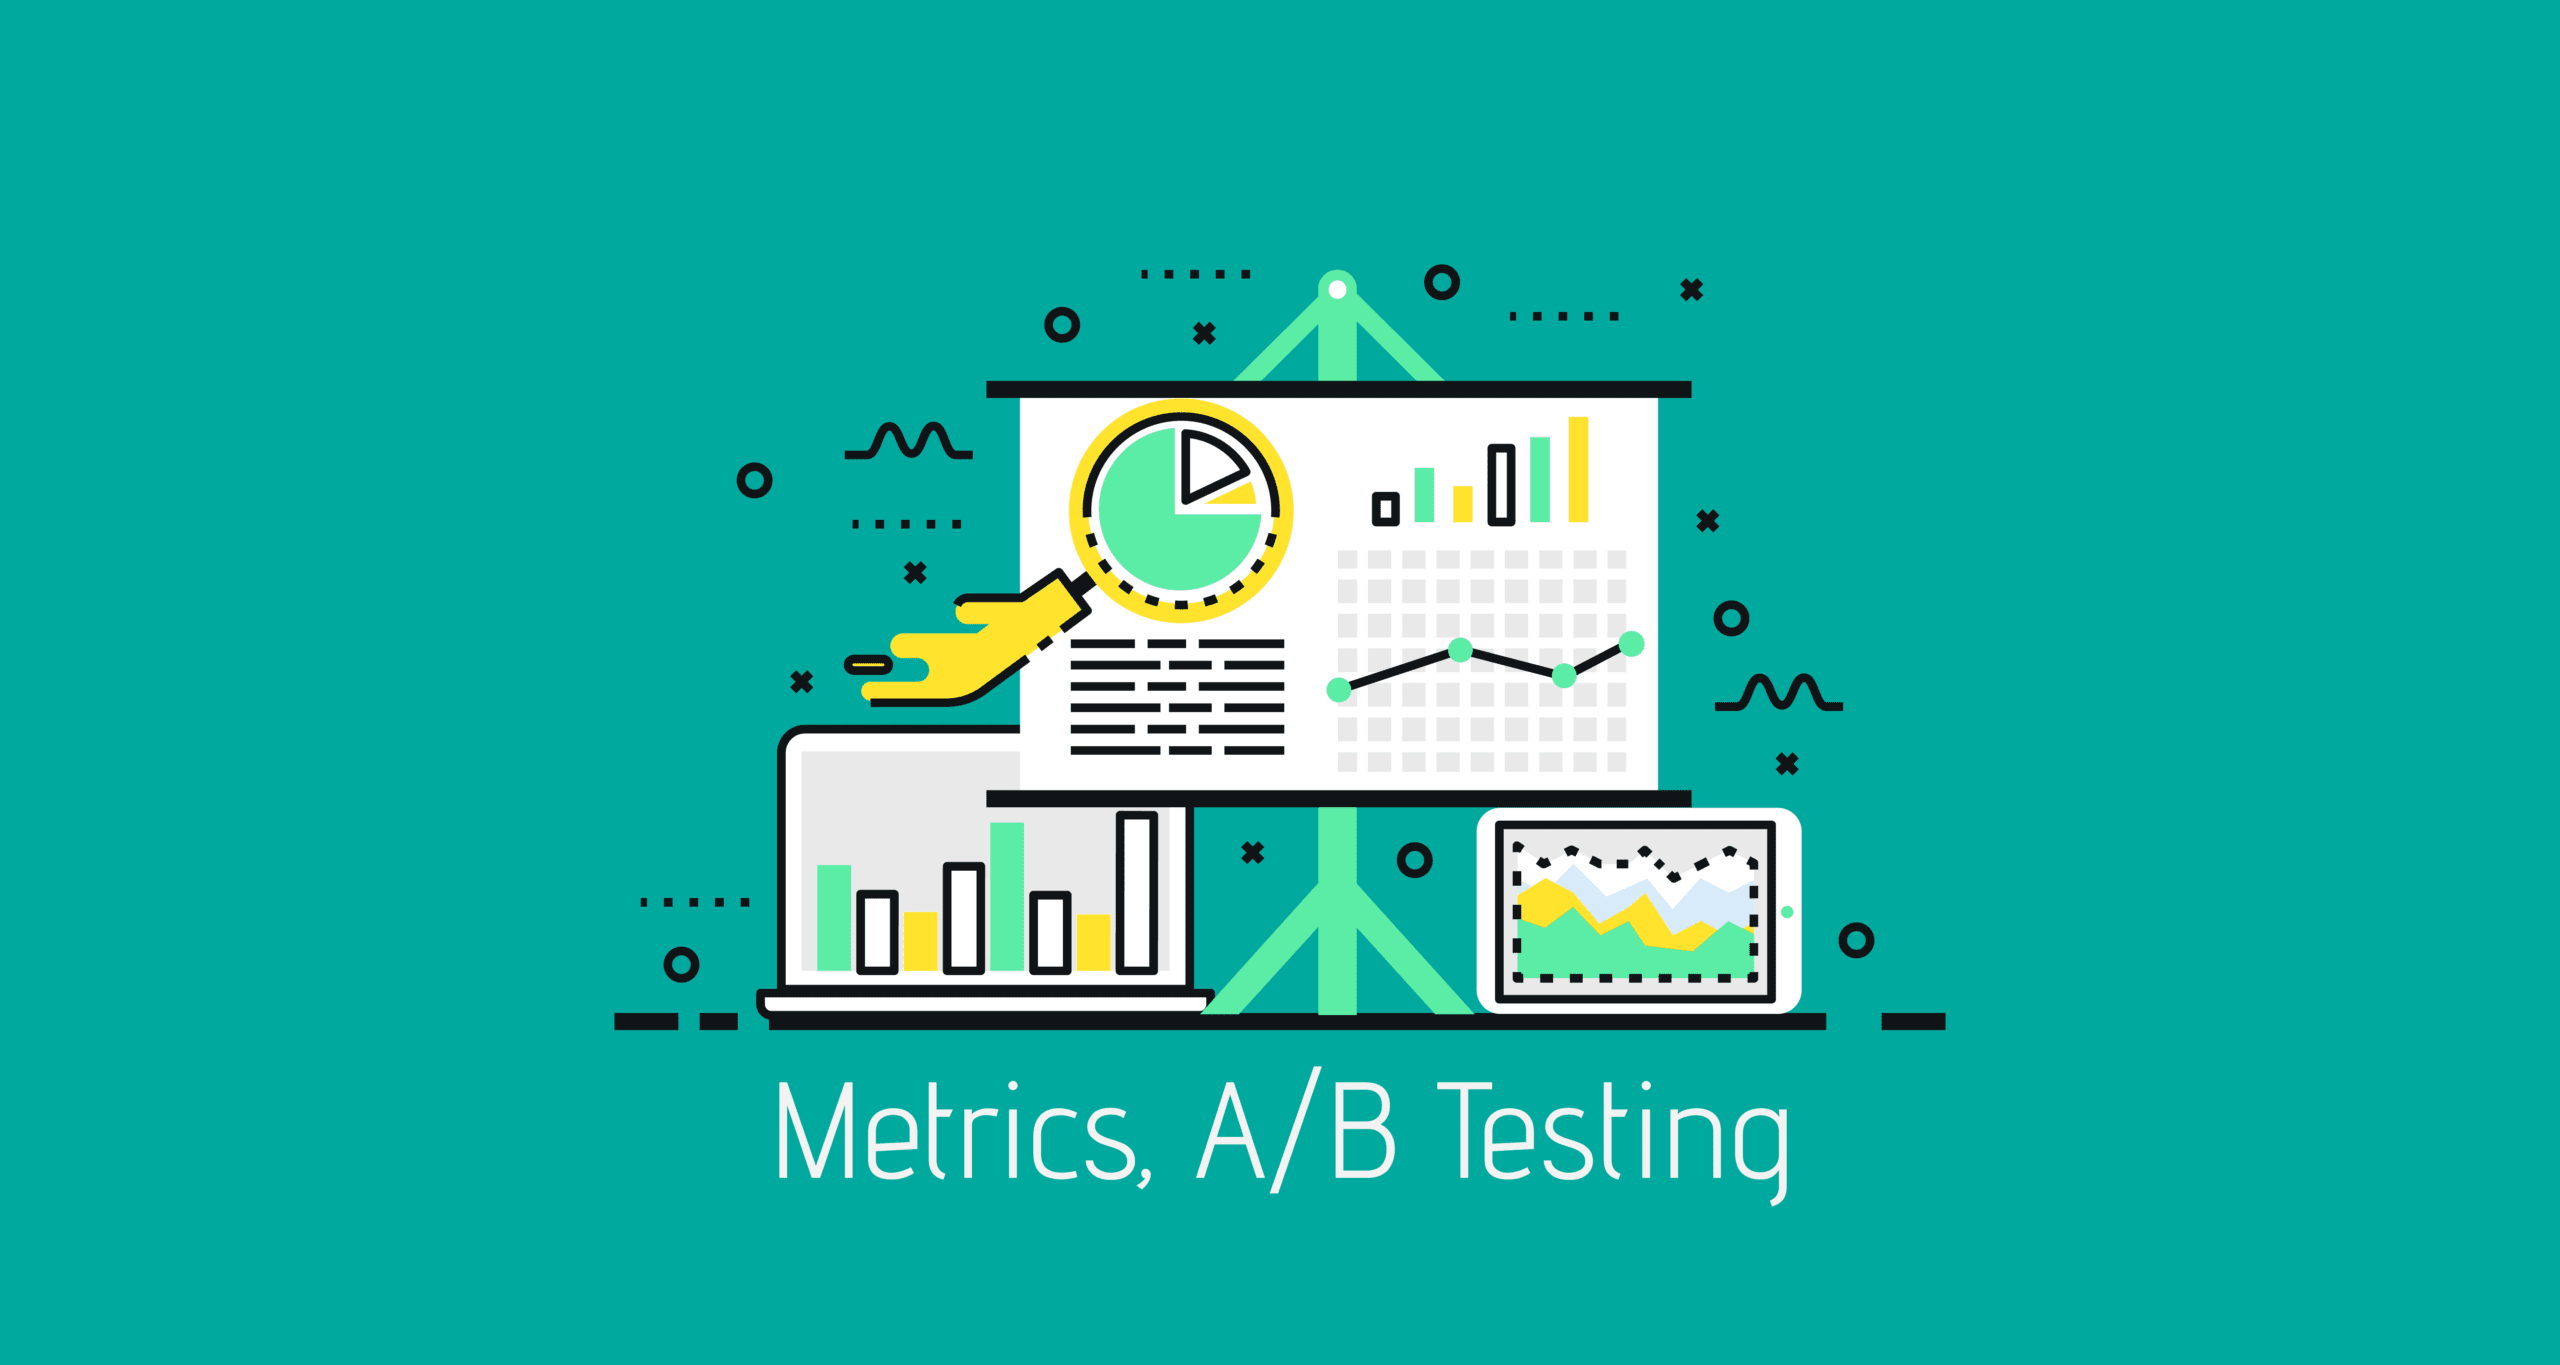 A photo with marketing campaign performance elements including charts, analytics and tools.